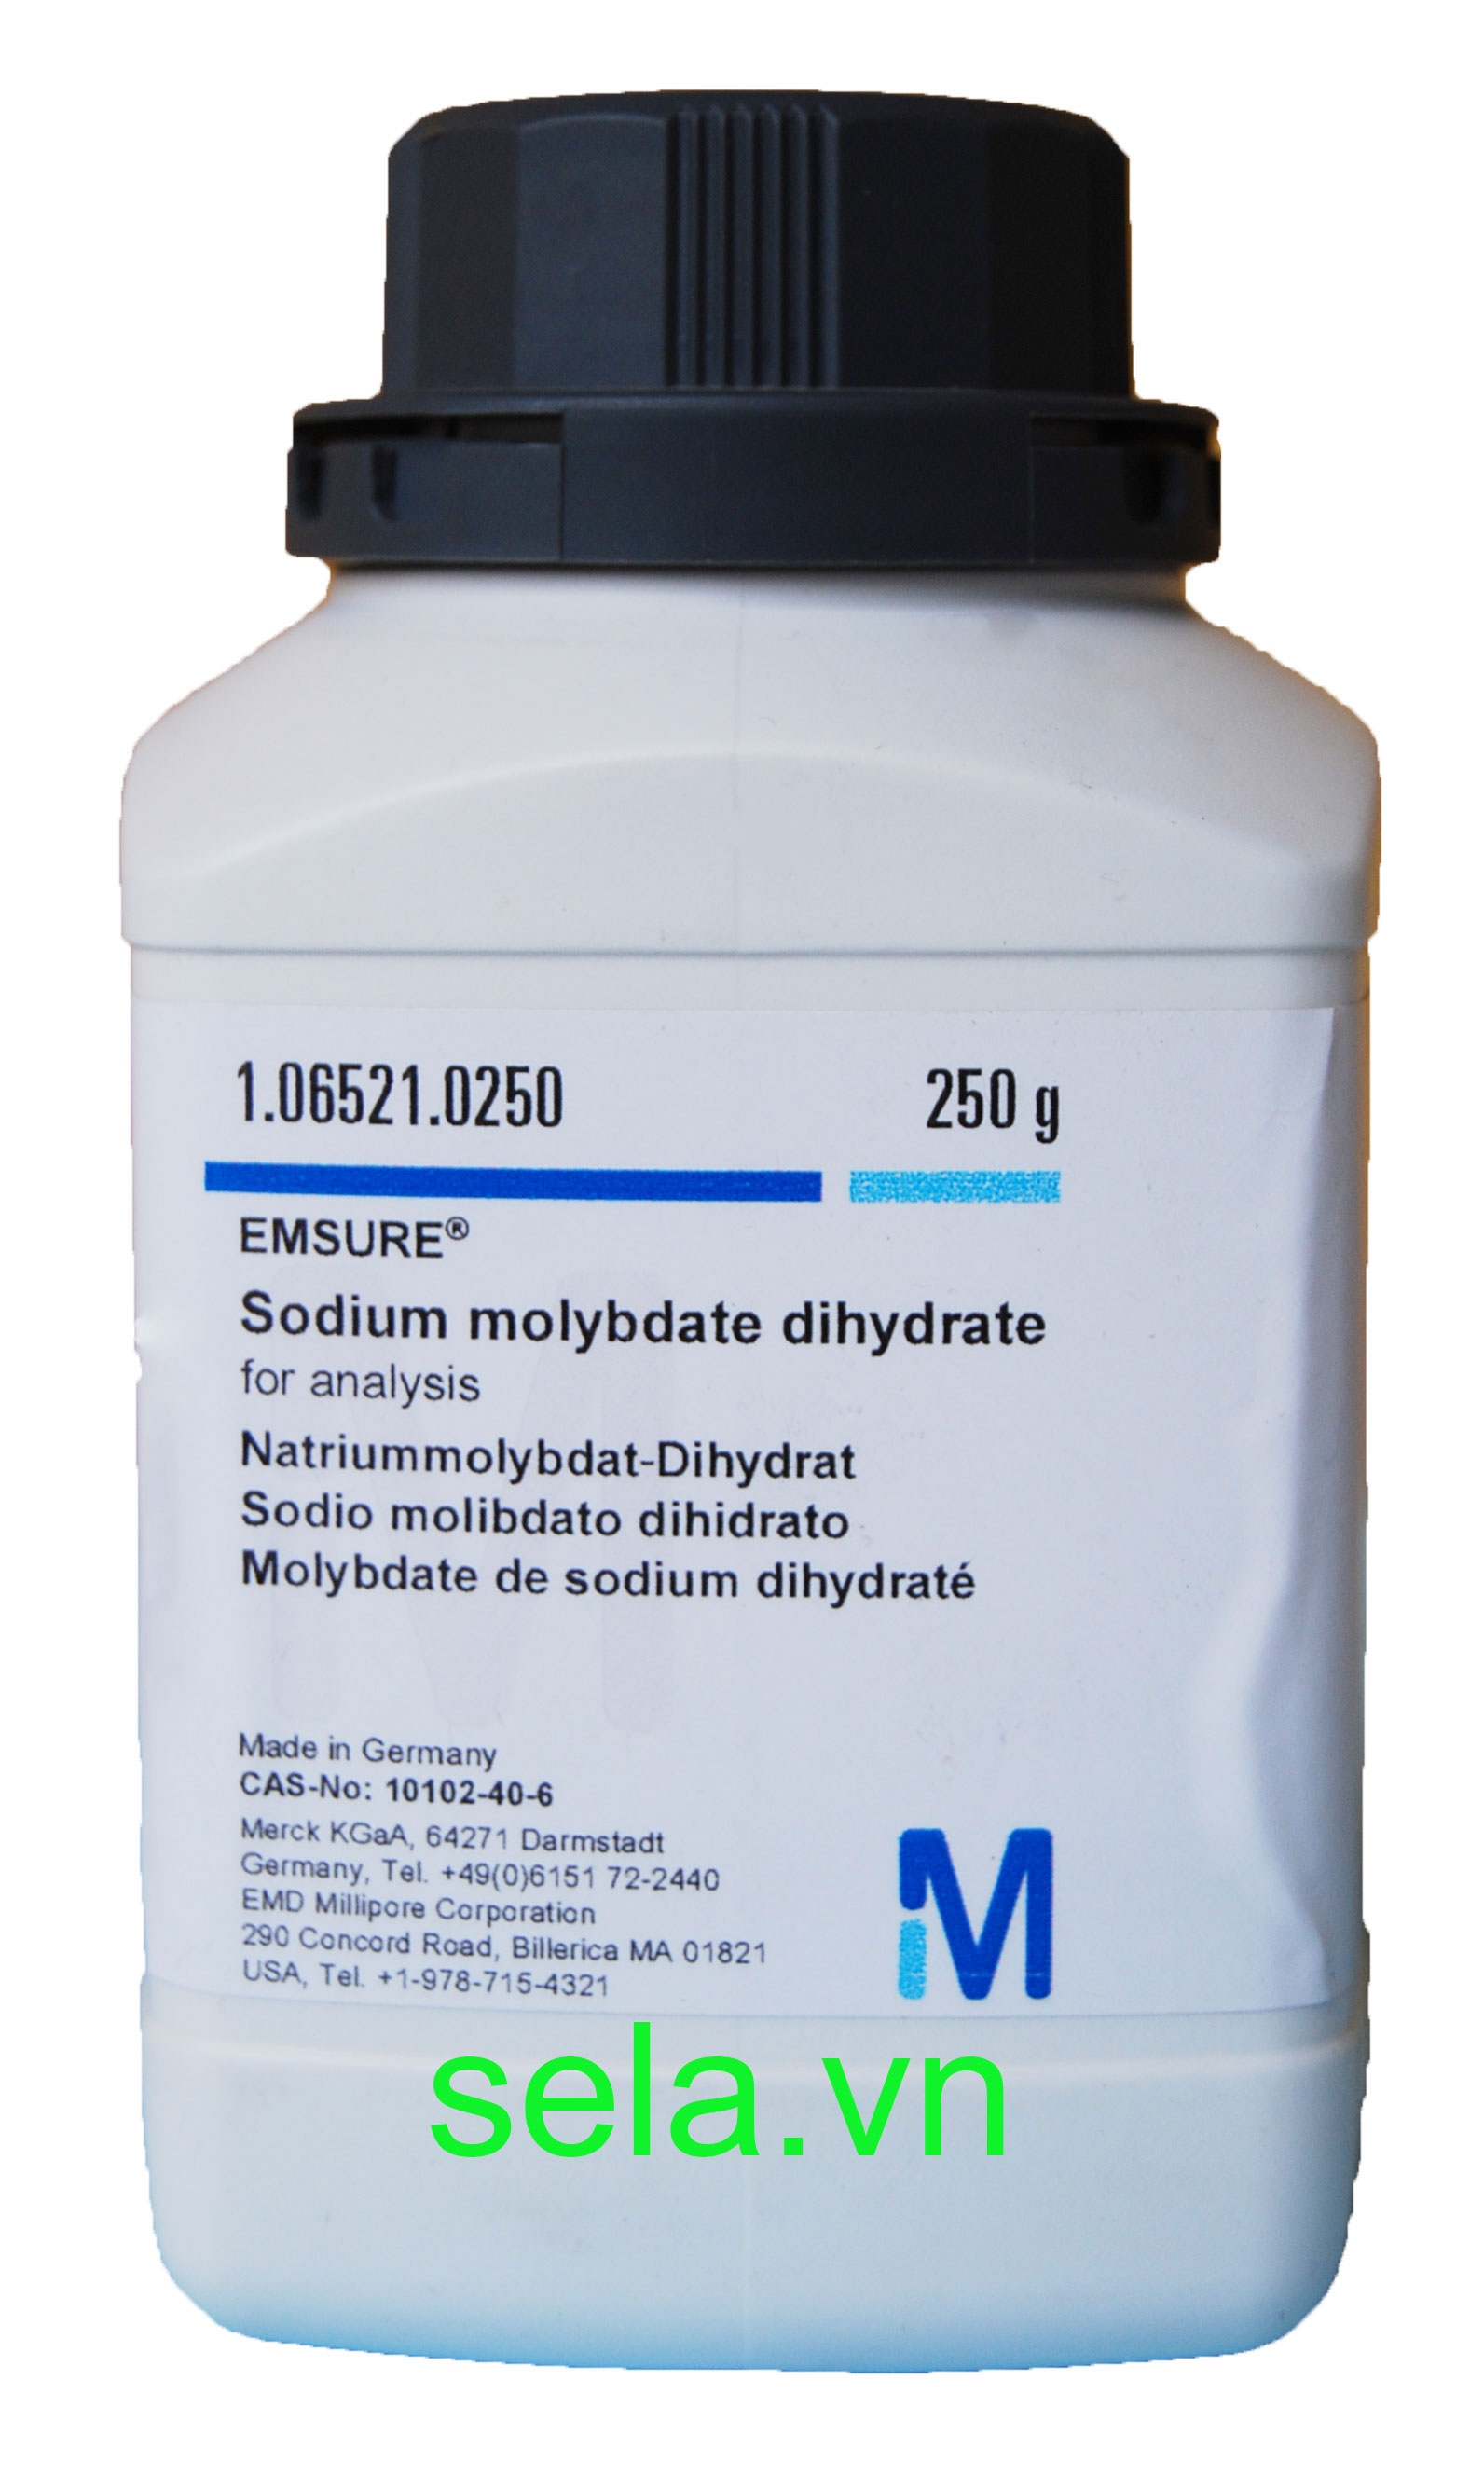 Sodium molybdate dihydrate for analysis EMSURE®